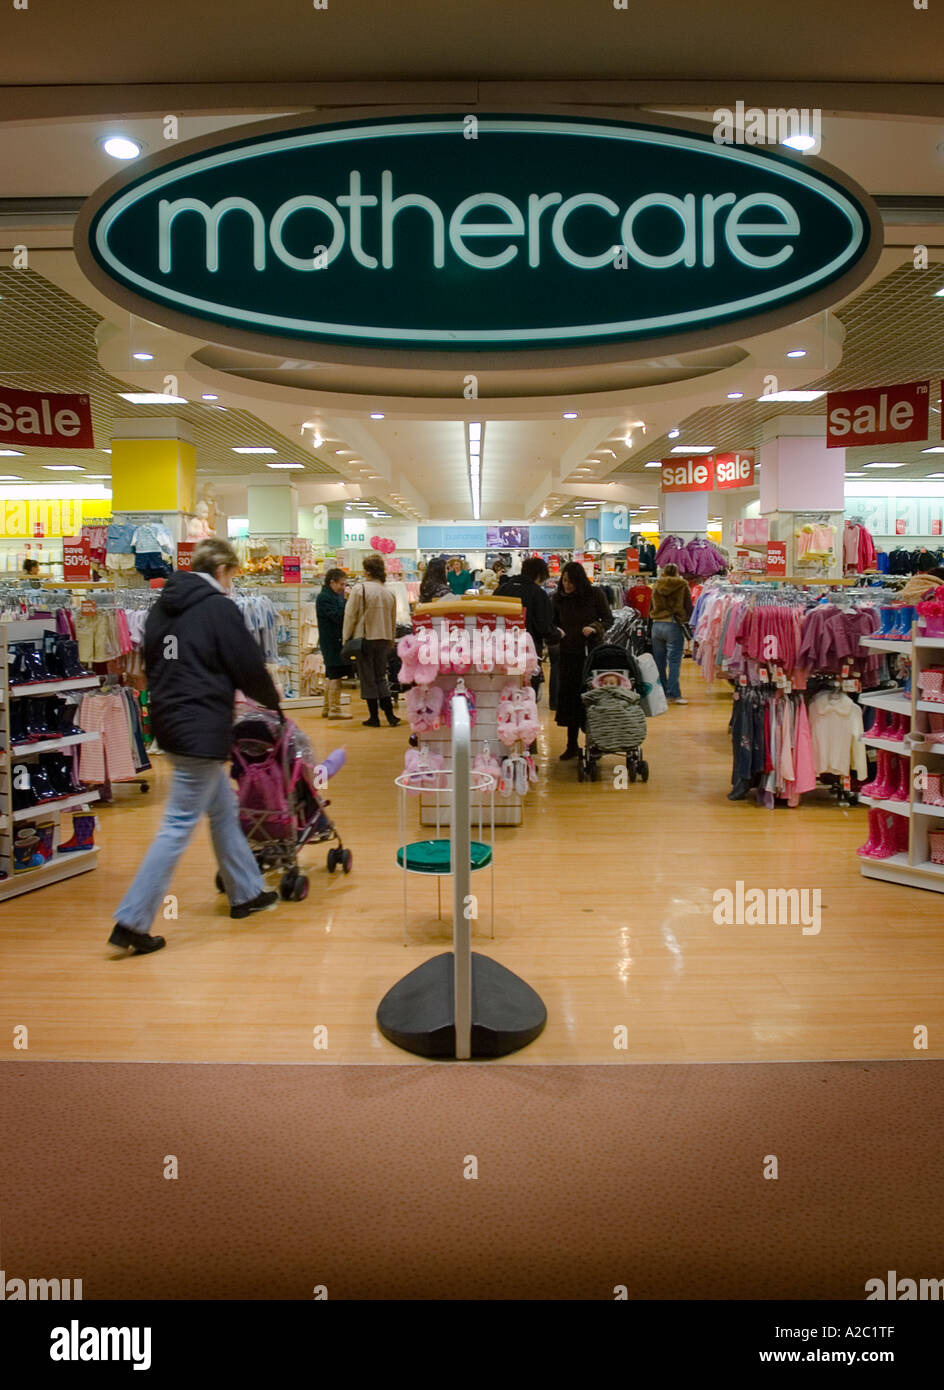 Mothercare Store, Norwich, Norfolk, UK - Stock Image